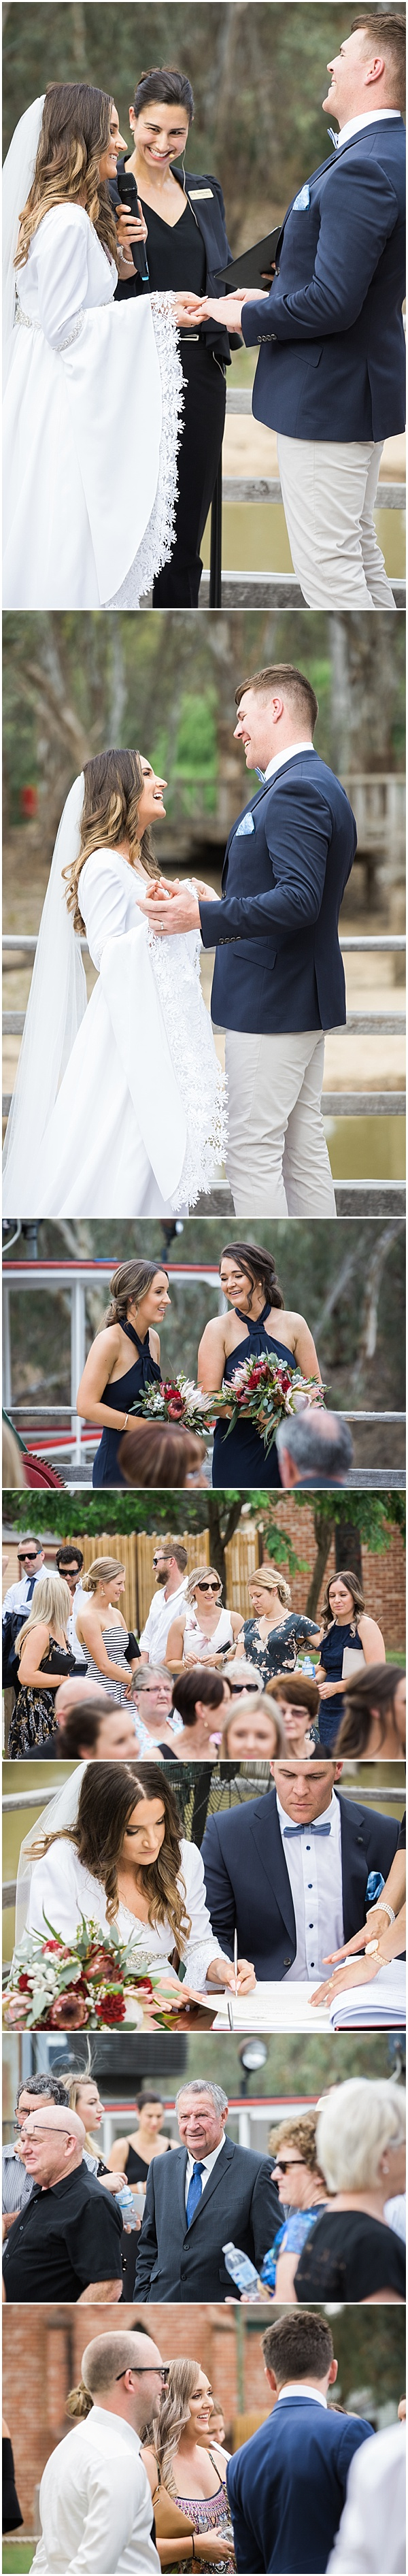 Bendigo Wedding Photographer_0009